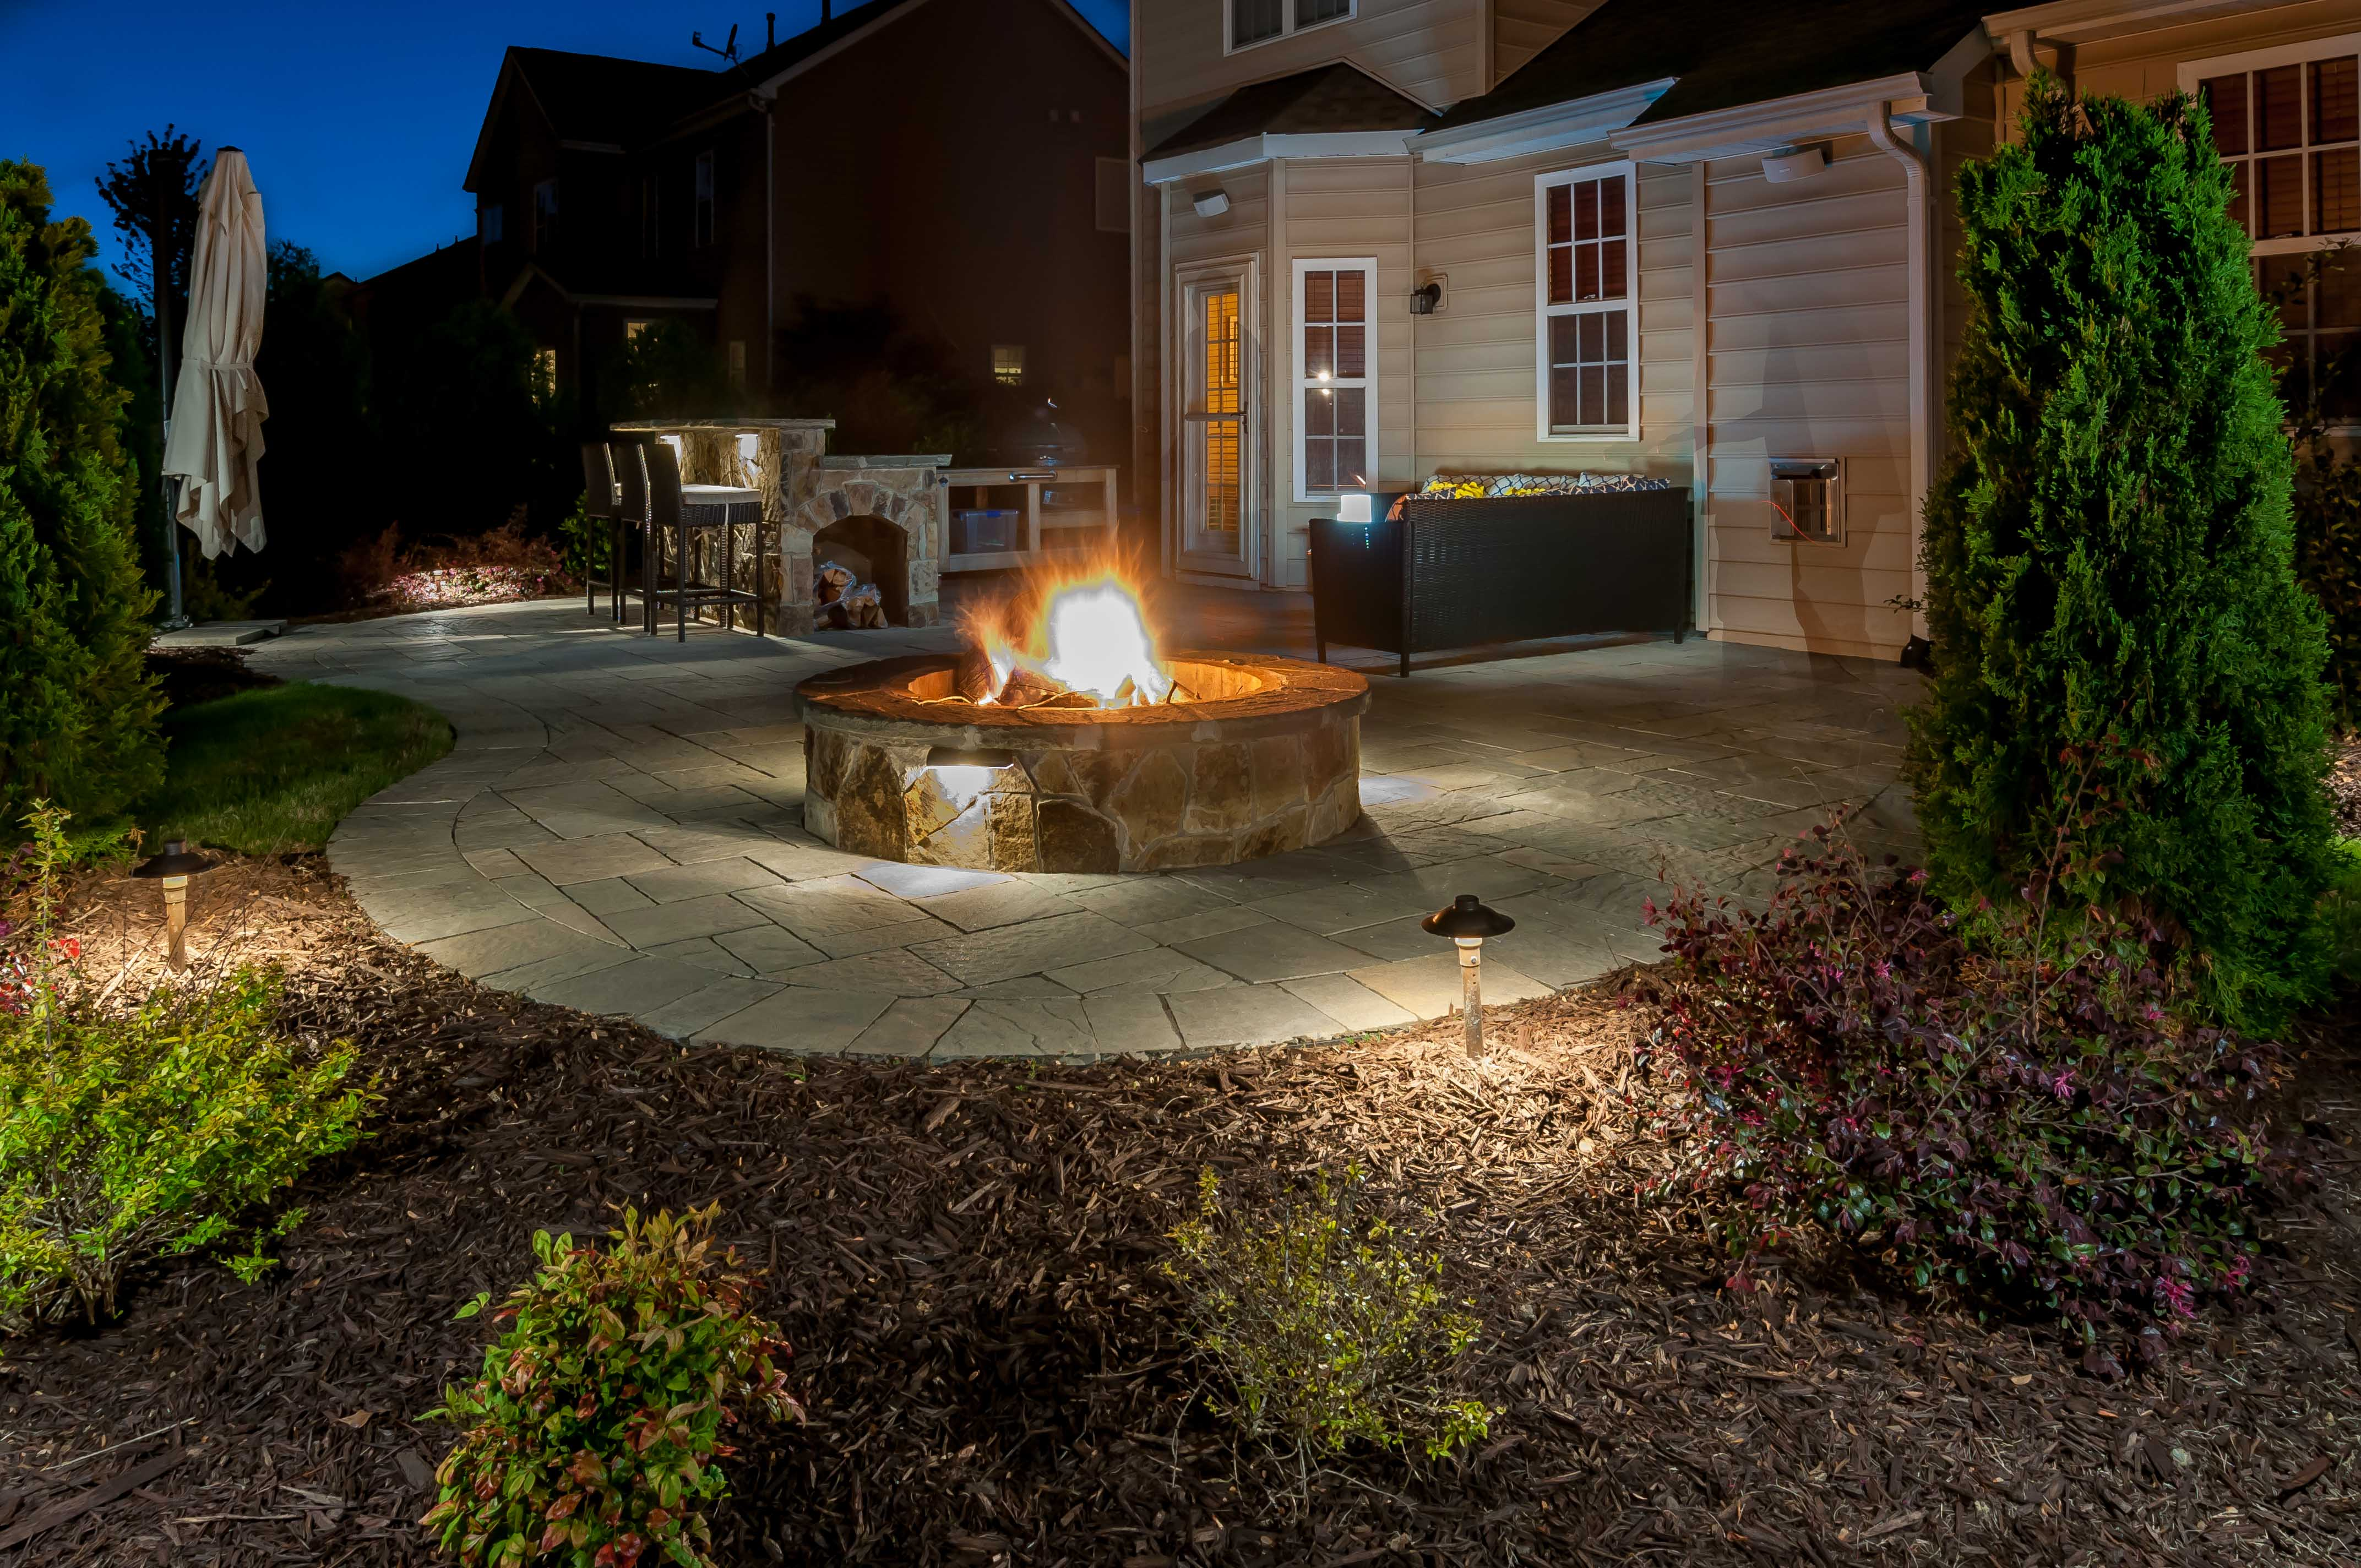 Patio and fire pit with lighting